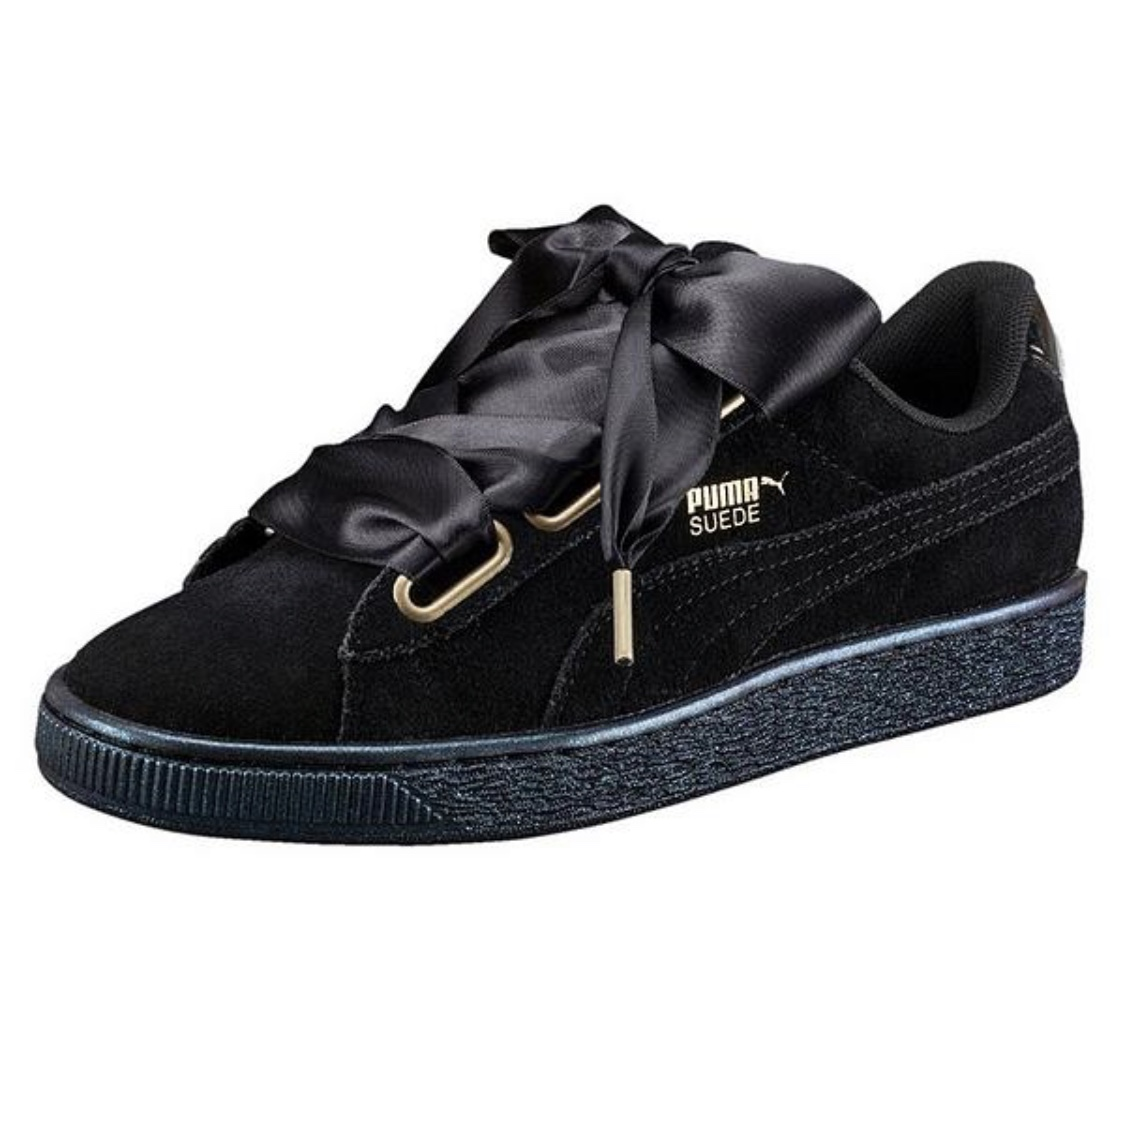 Puma EditionSize Sweetheart Depop Suede 4Super Black 5jqRL4A3